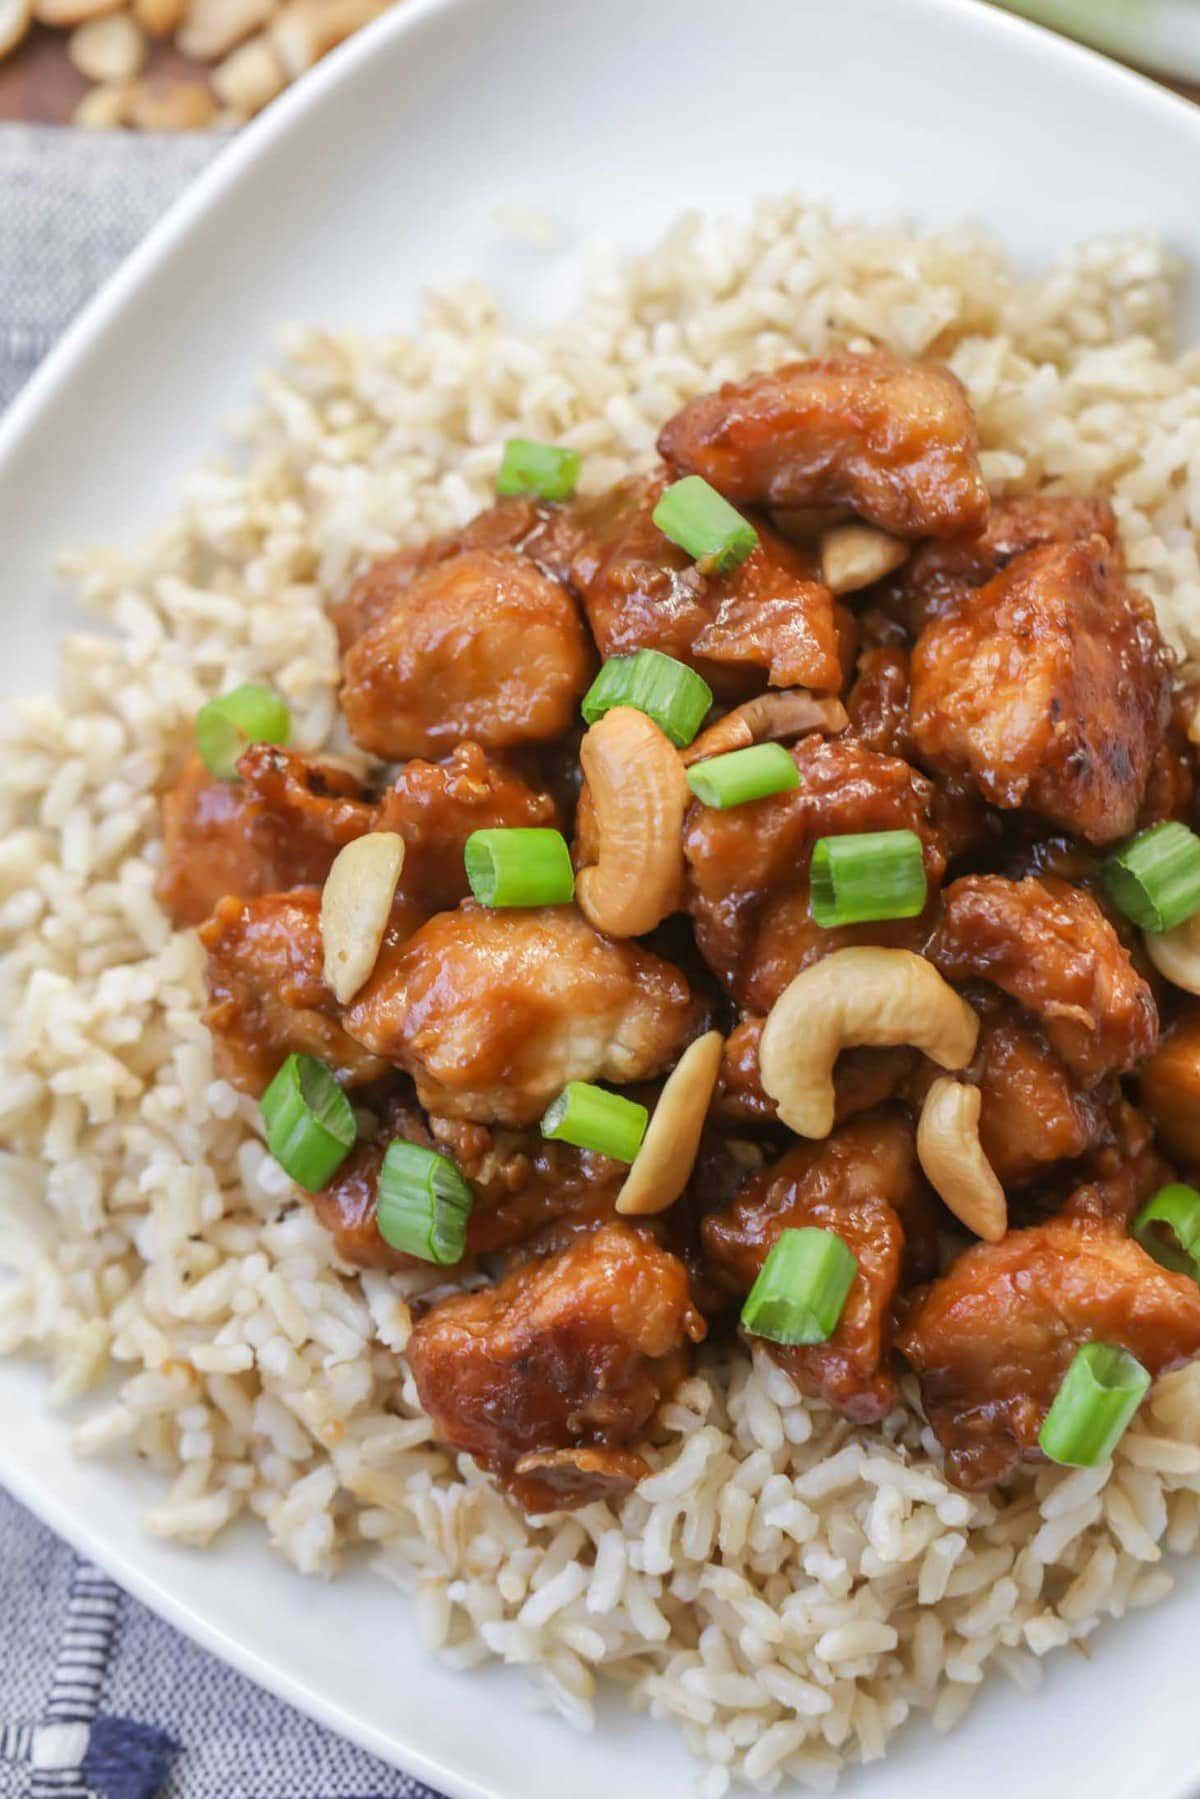 Slow Cooker Cashew Chicken served over brown rice on white plate